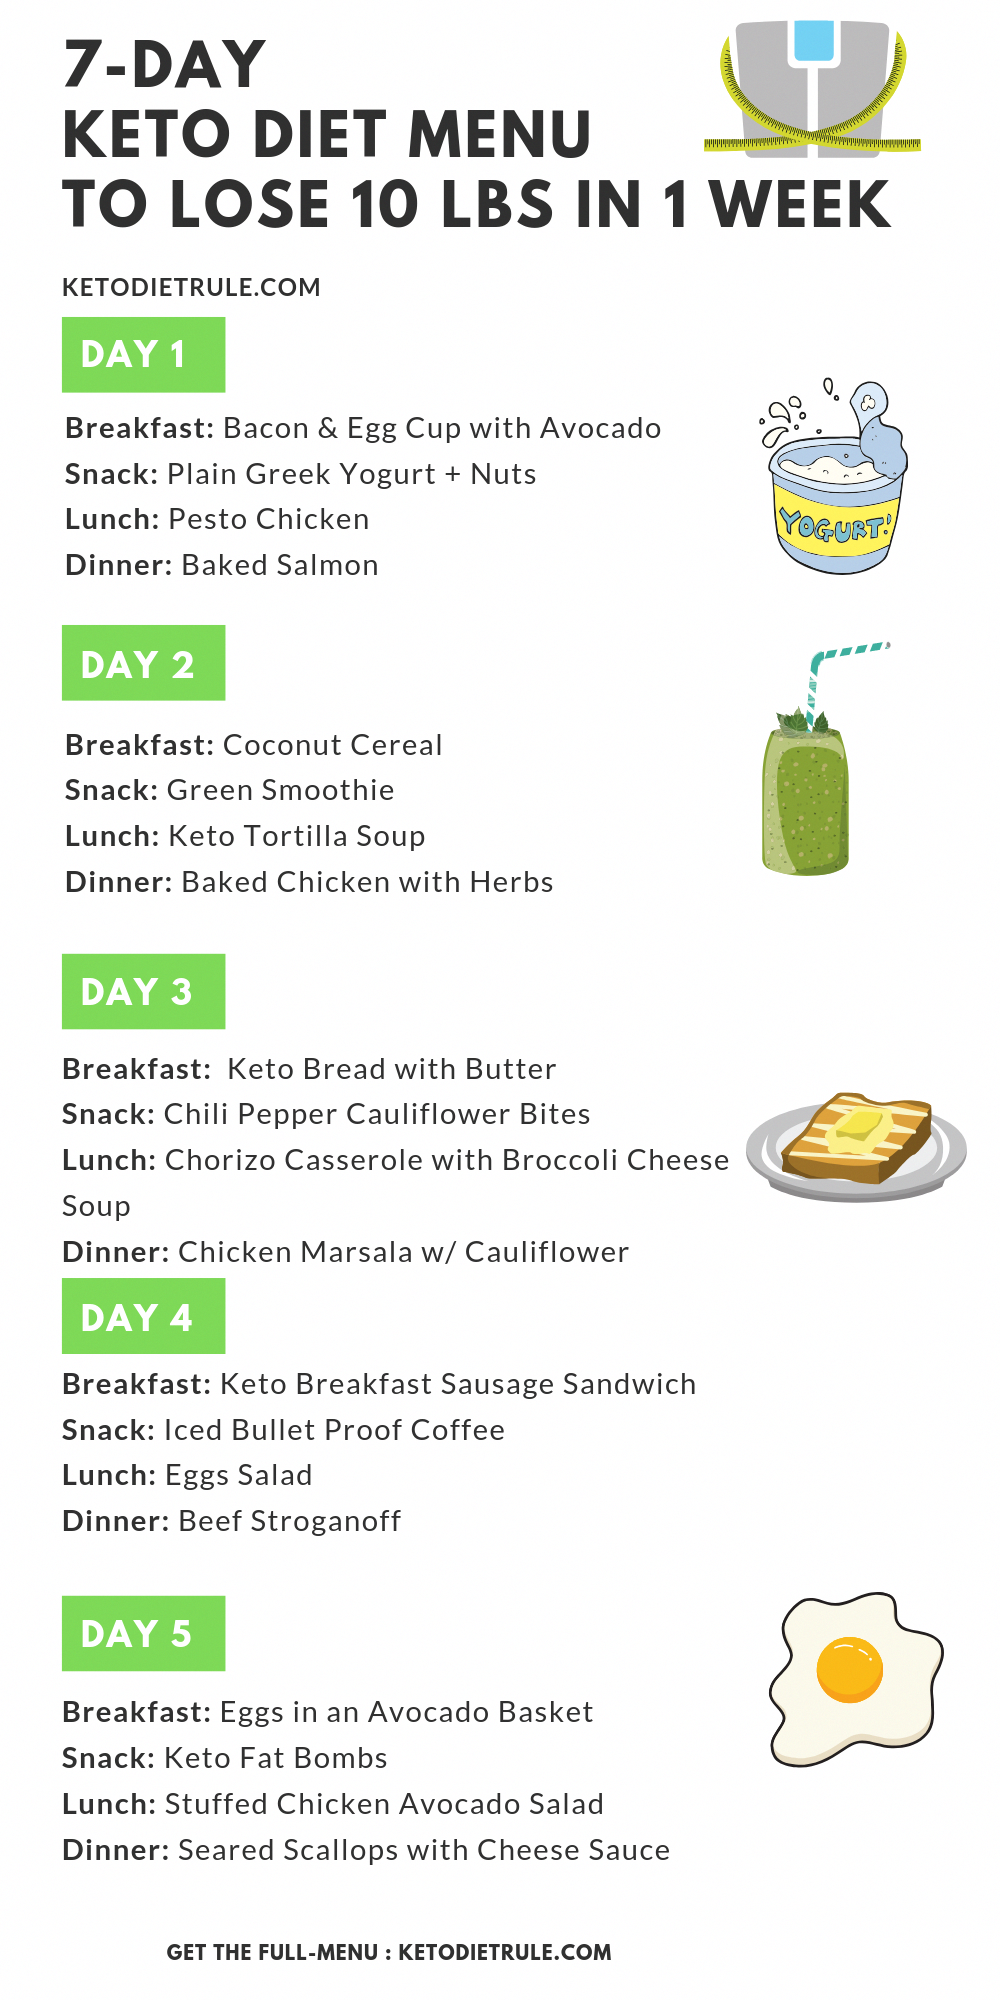 7Day Keto Diet Meal Plan and Menu for Beginners to Lose Weight  Keto diet for beginners